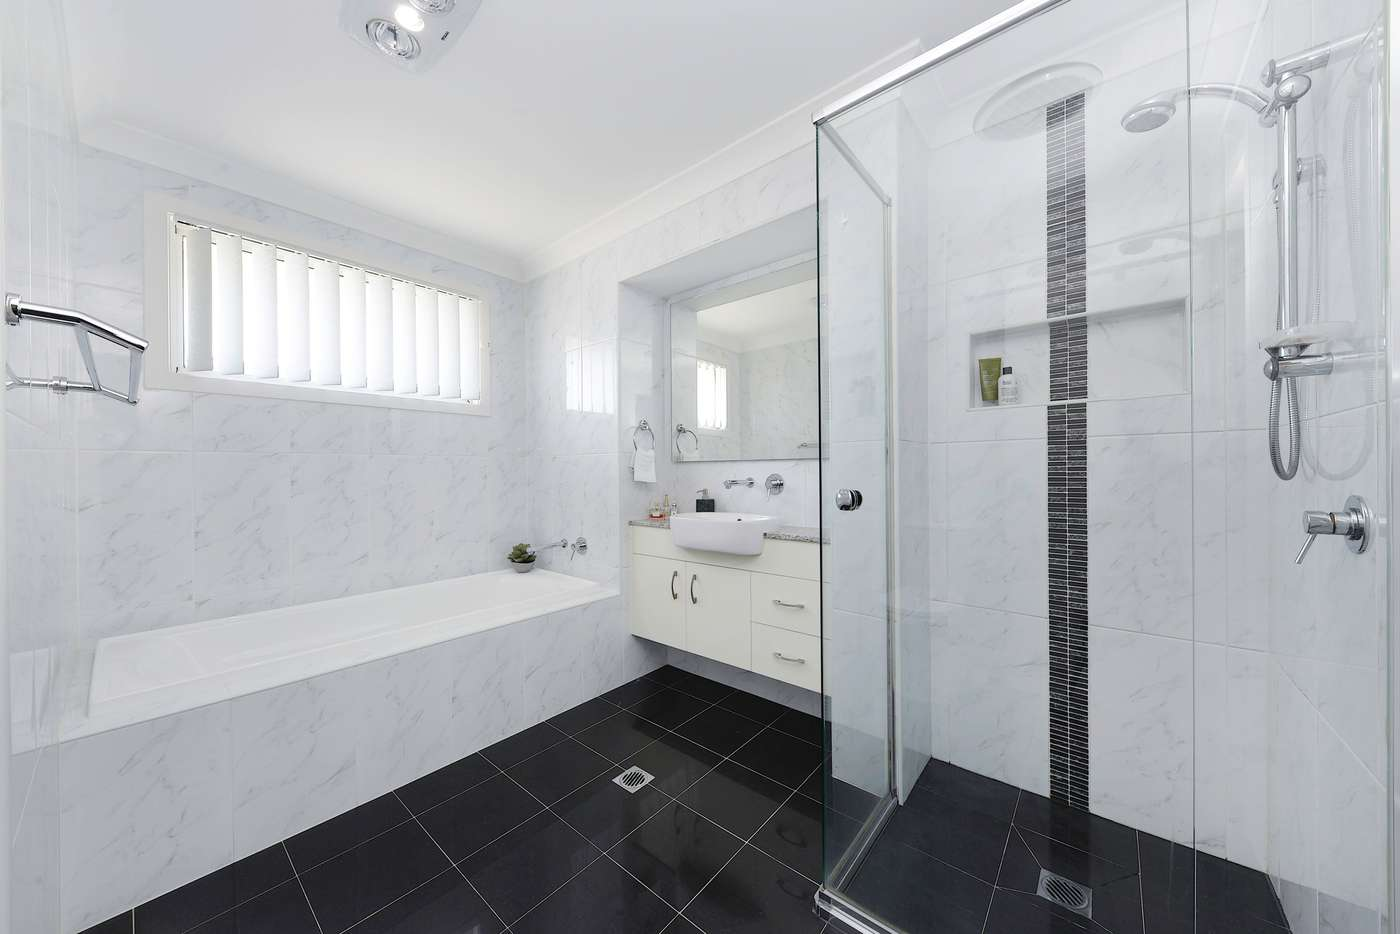 Sixth view of Homely house listing, 284 Beauchamp Road, Matraville NSW 2036